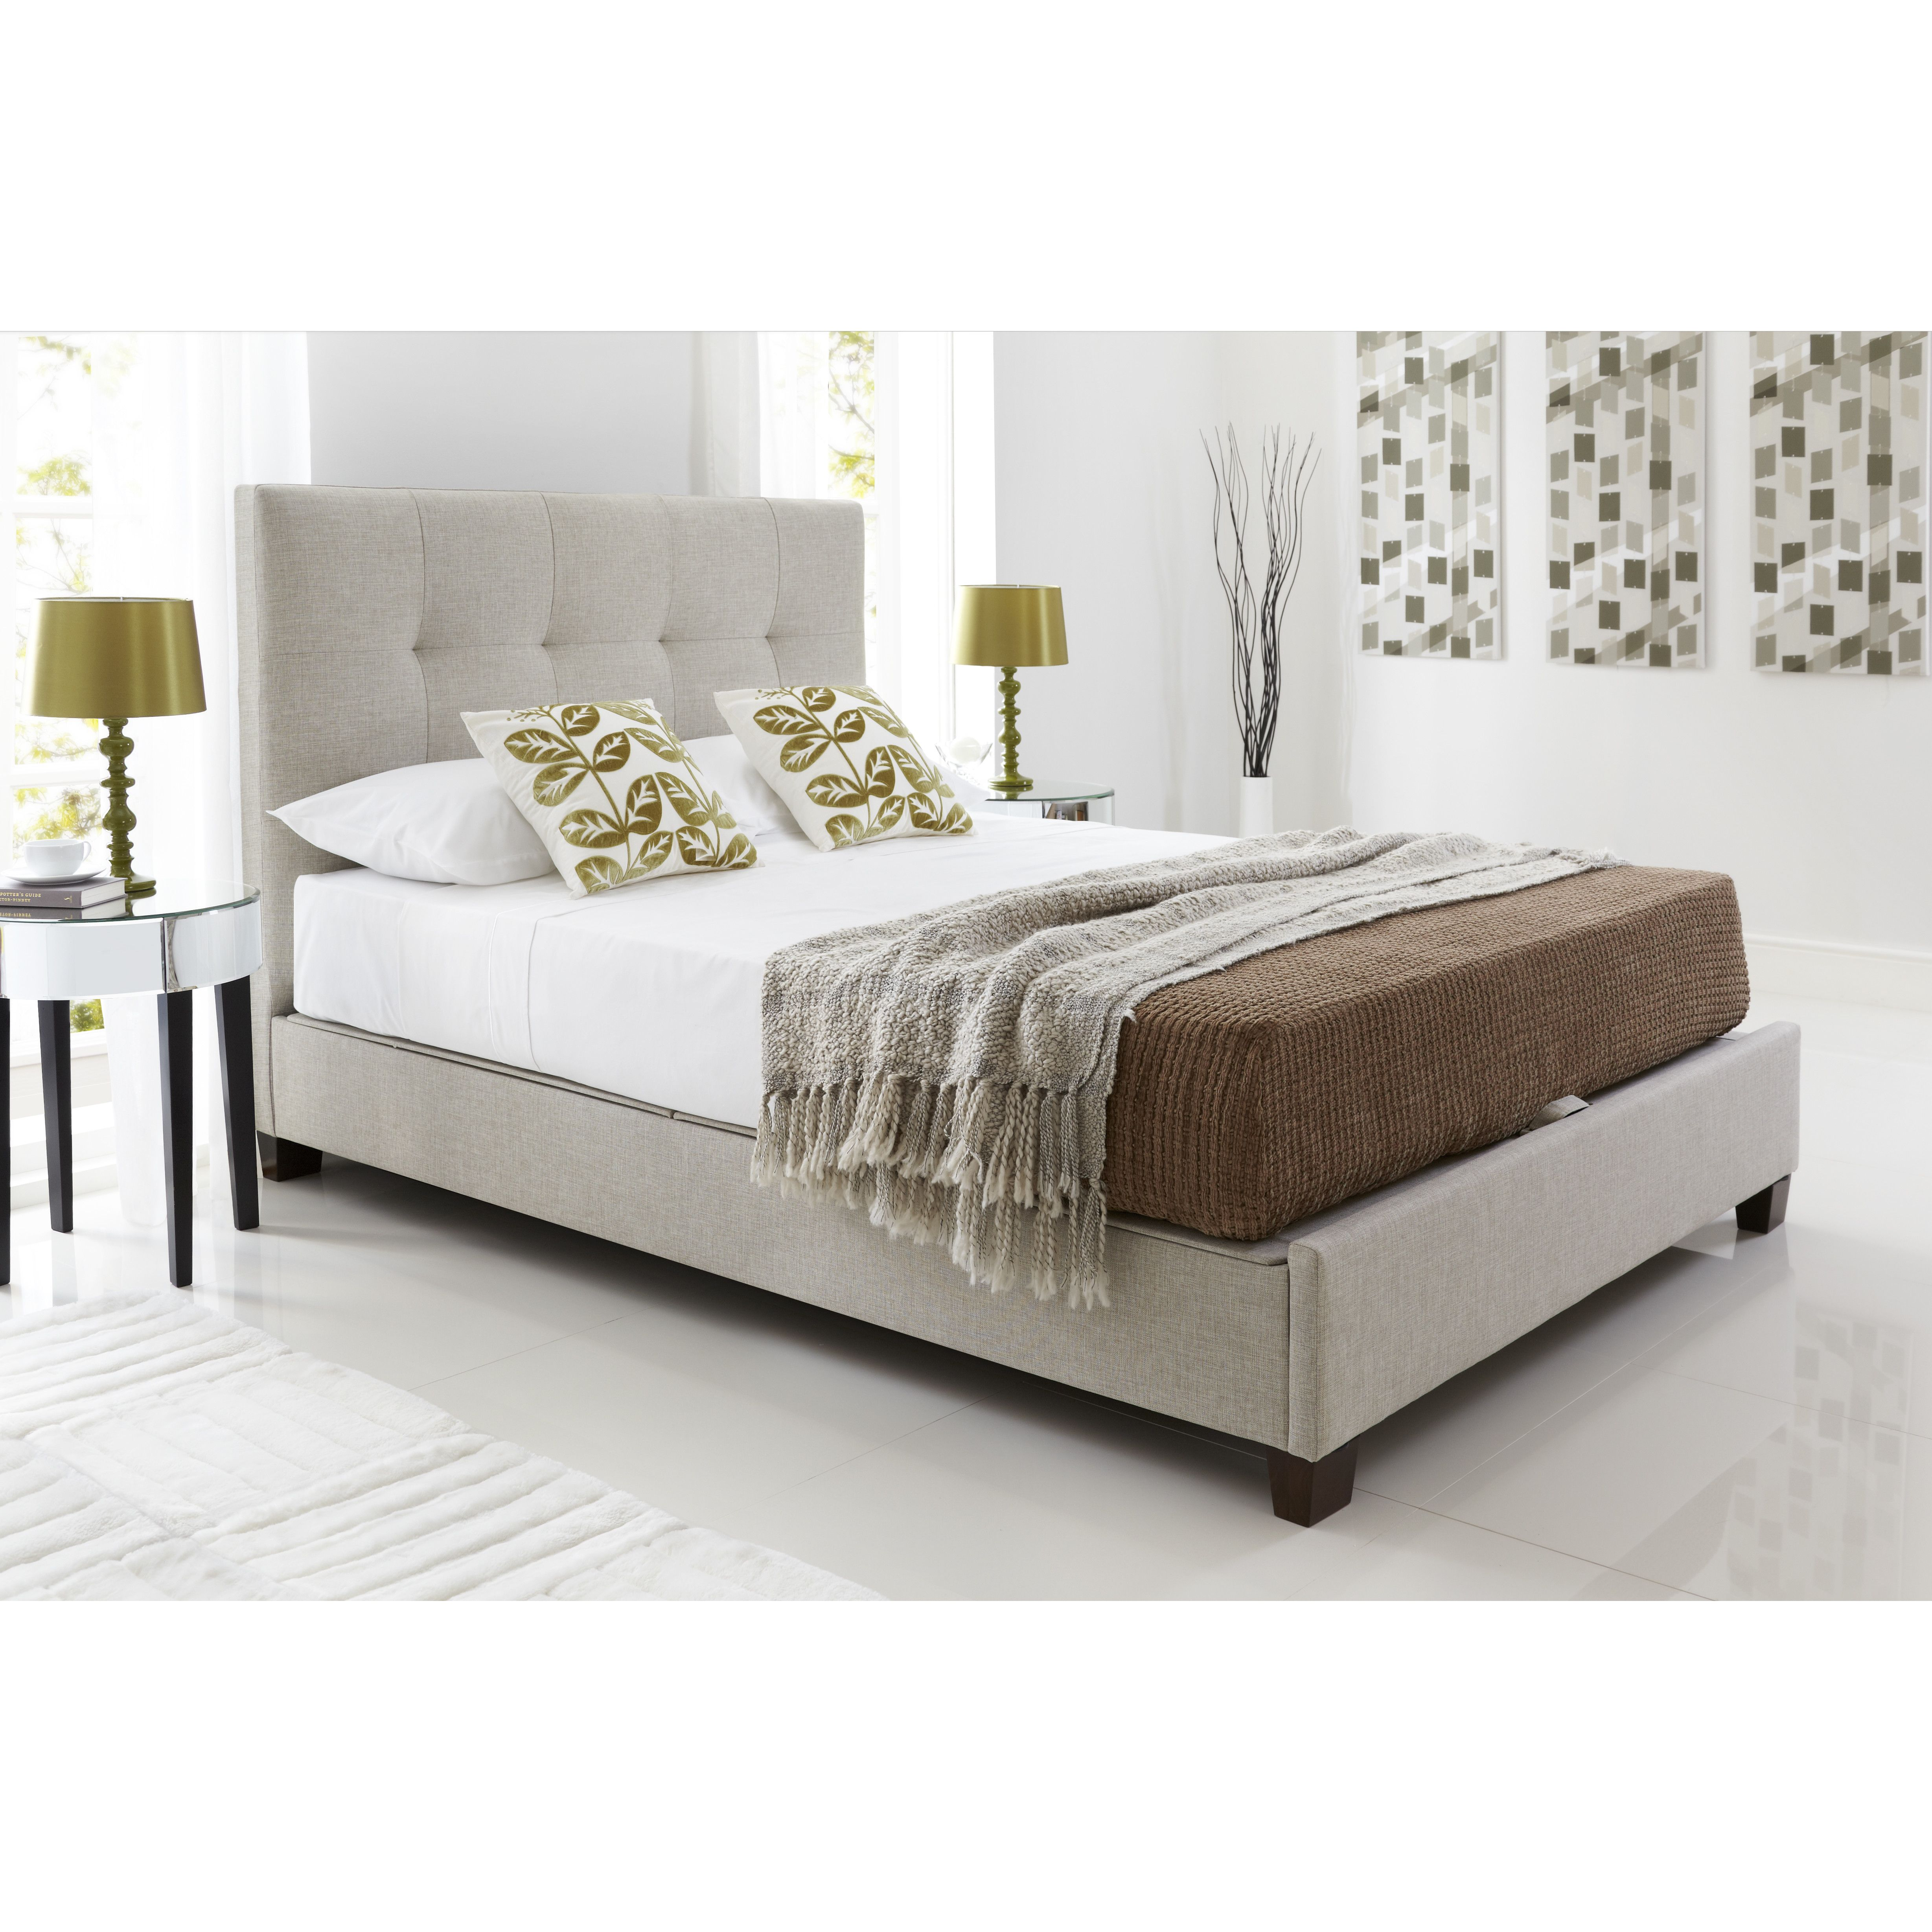 Customer Image Zoomed Ottoman bed, Ottoman storage bed